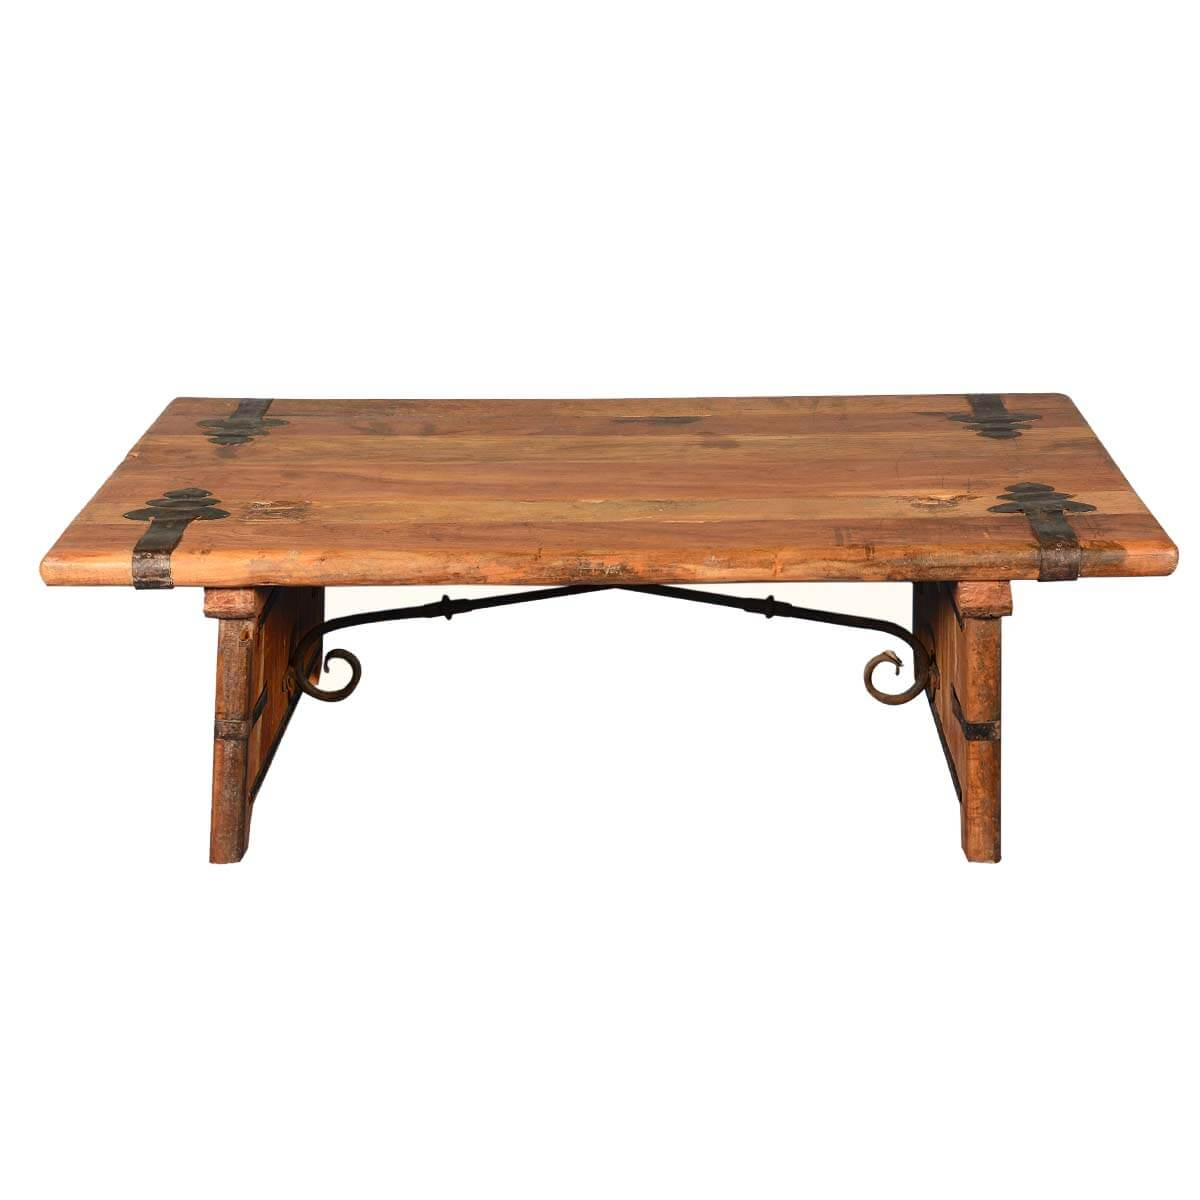 Rustic Reclaimed Wood amp Wrought Iron Hastings Coffee Table